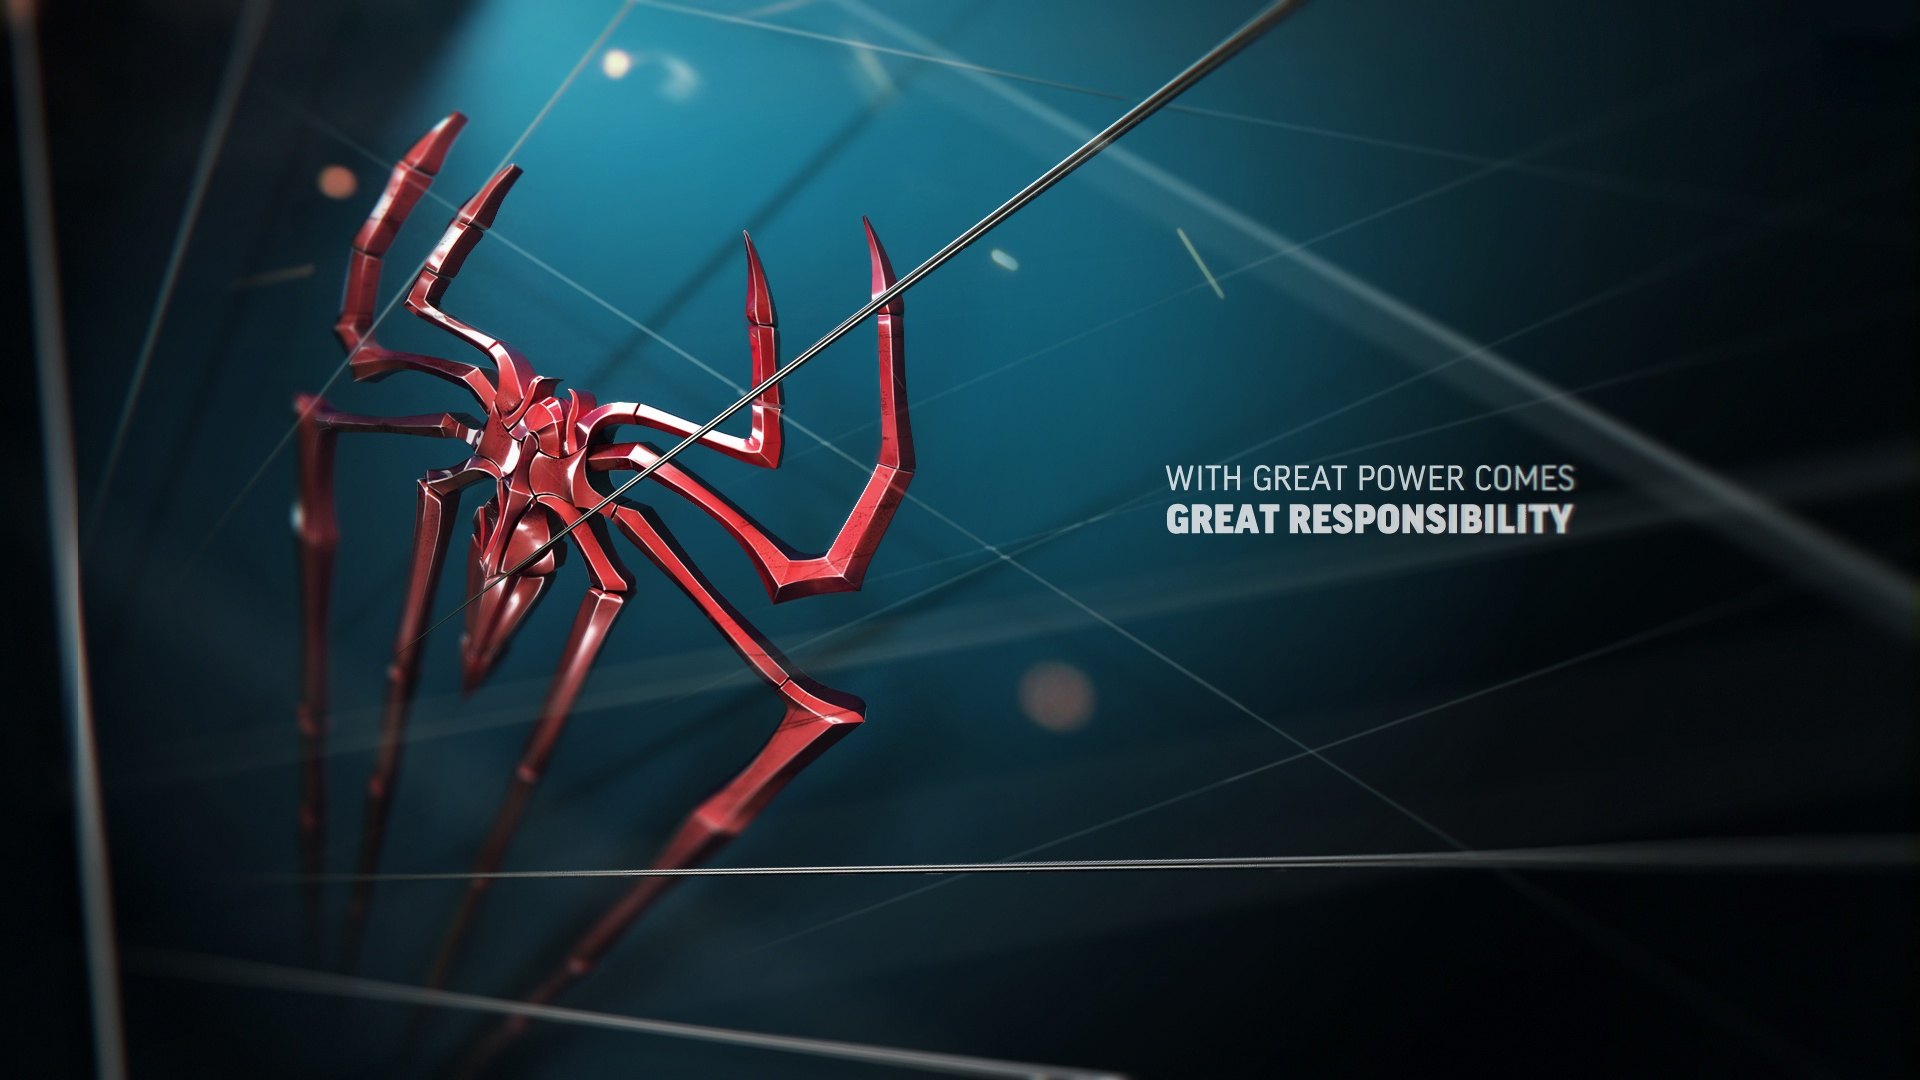 cbabeffaeb-spiderman-amazing-spiderman-wallpaper-wpc580544